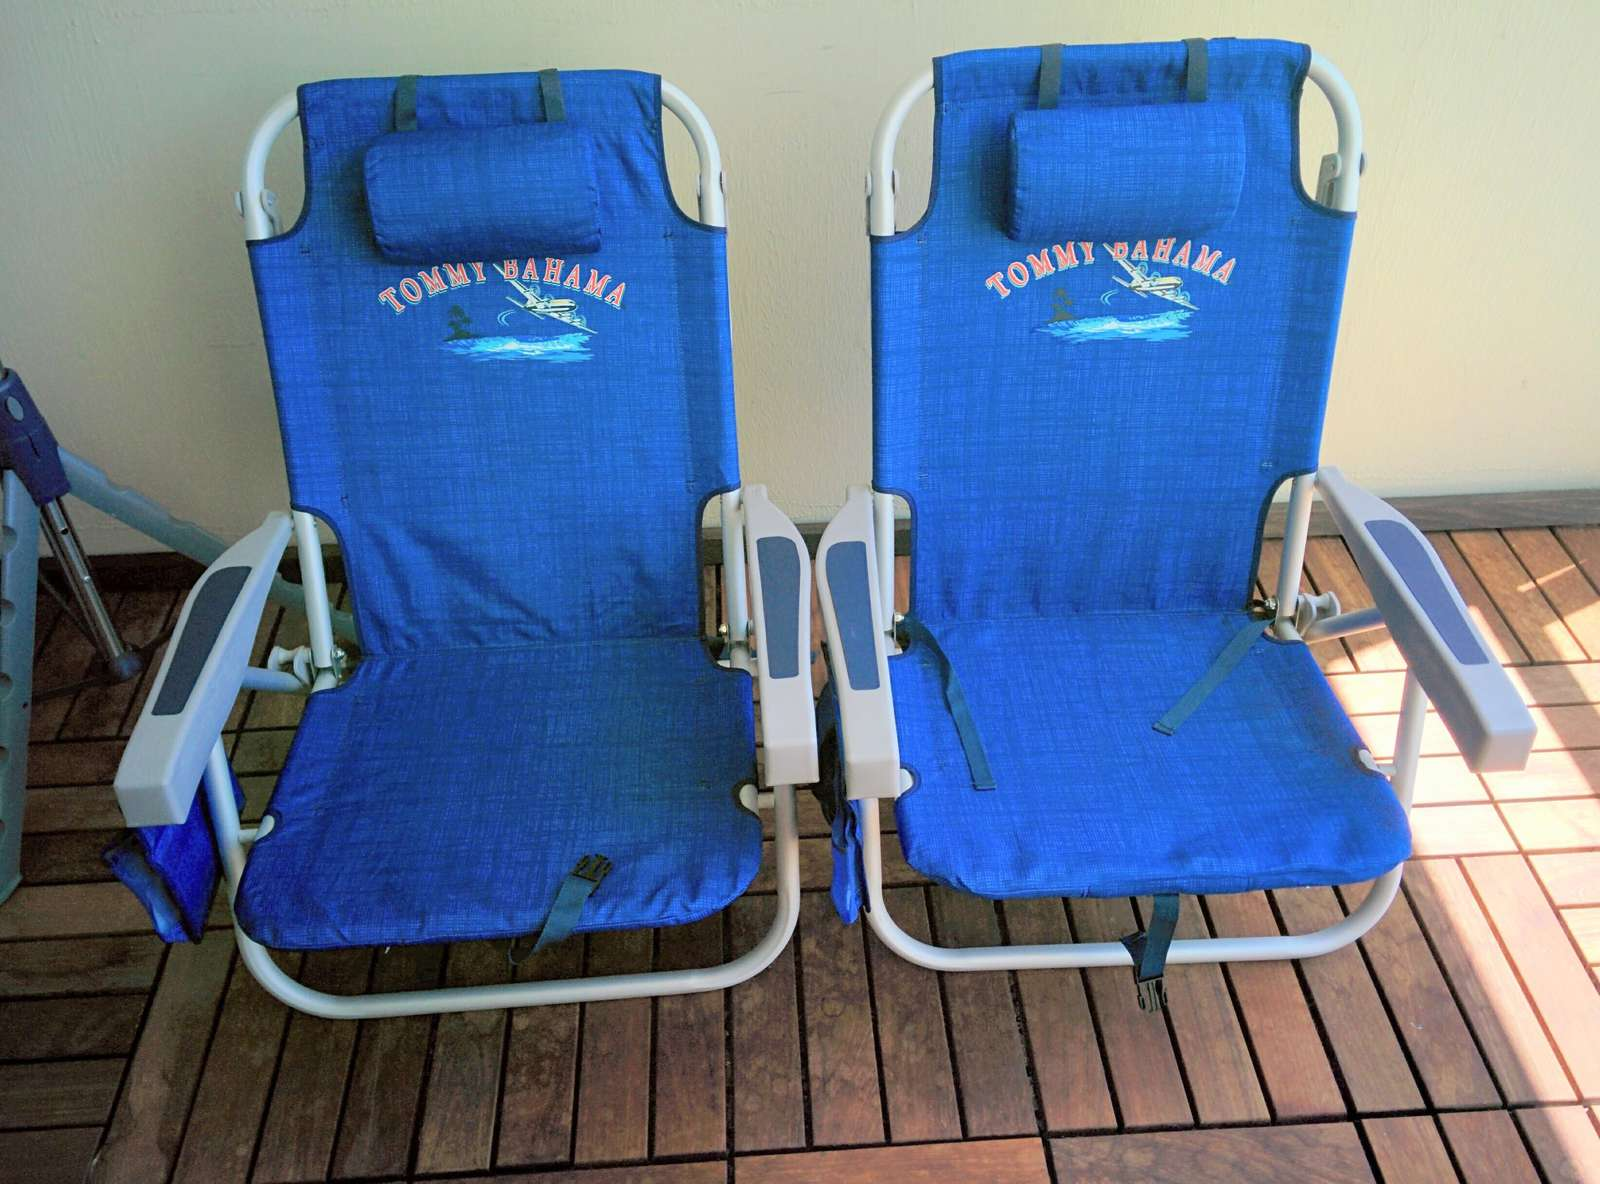 We provide 2 backpack beach chairs